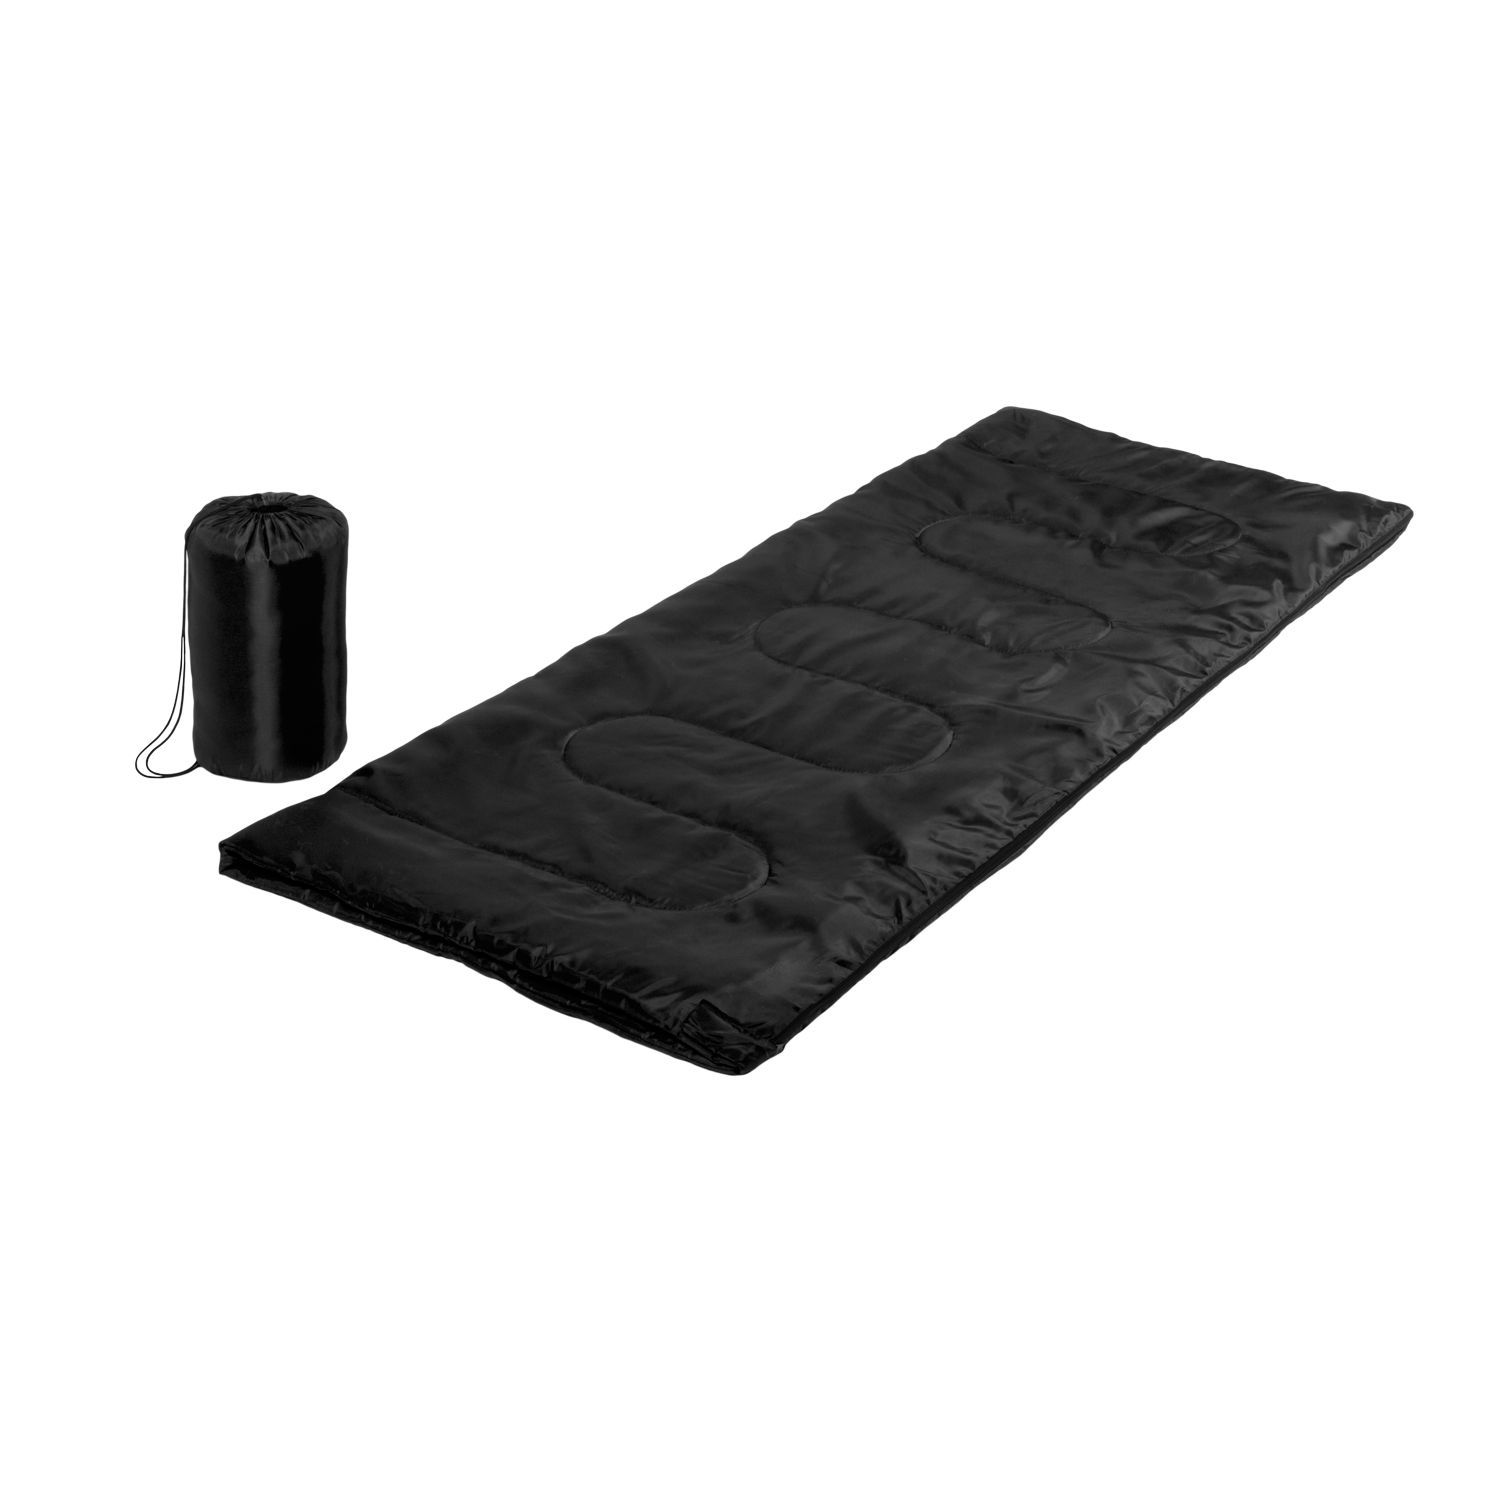 Sleeping Bag 012 - hmi14012-01 (Black)